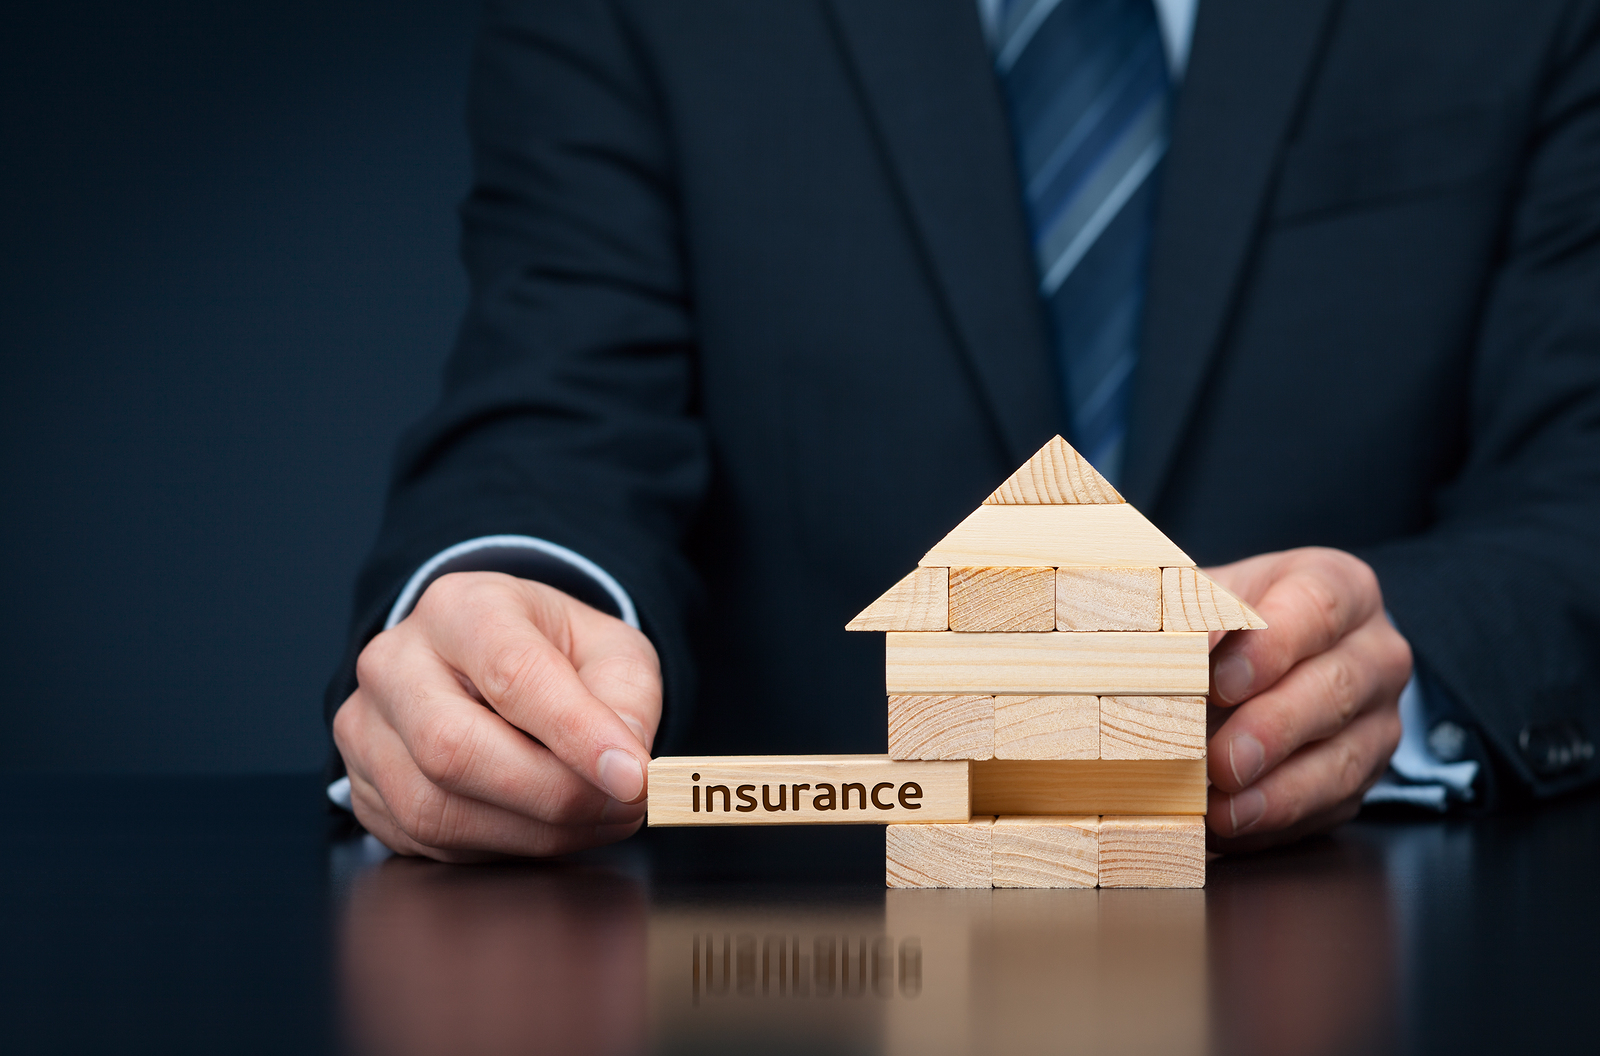 Renters Insurance - A Wise Decision For Apartment Living